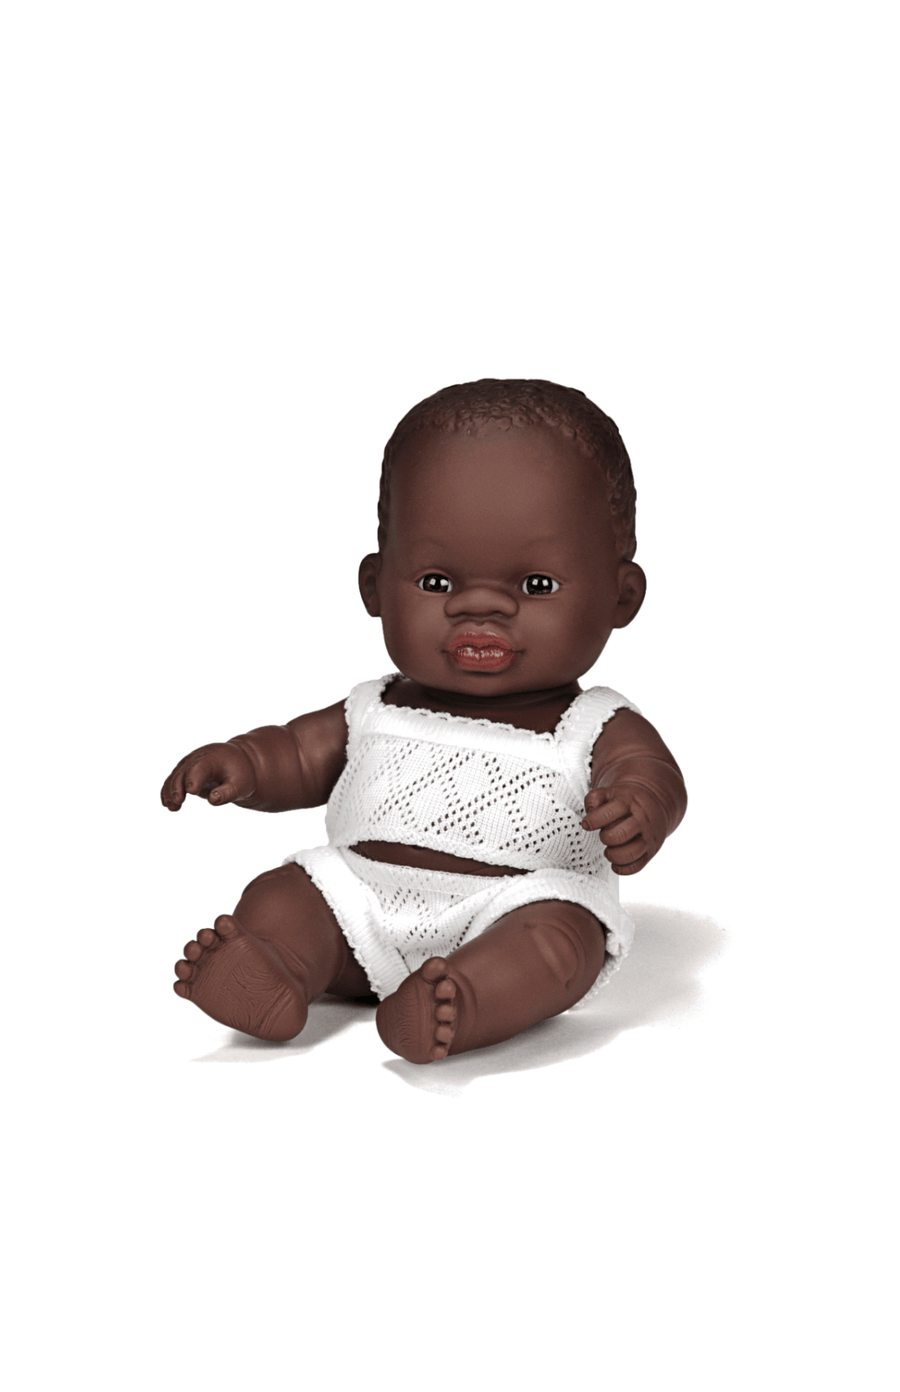 Miniland Baby Doll 21cm Boy - Black